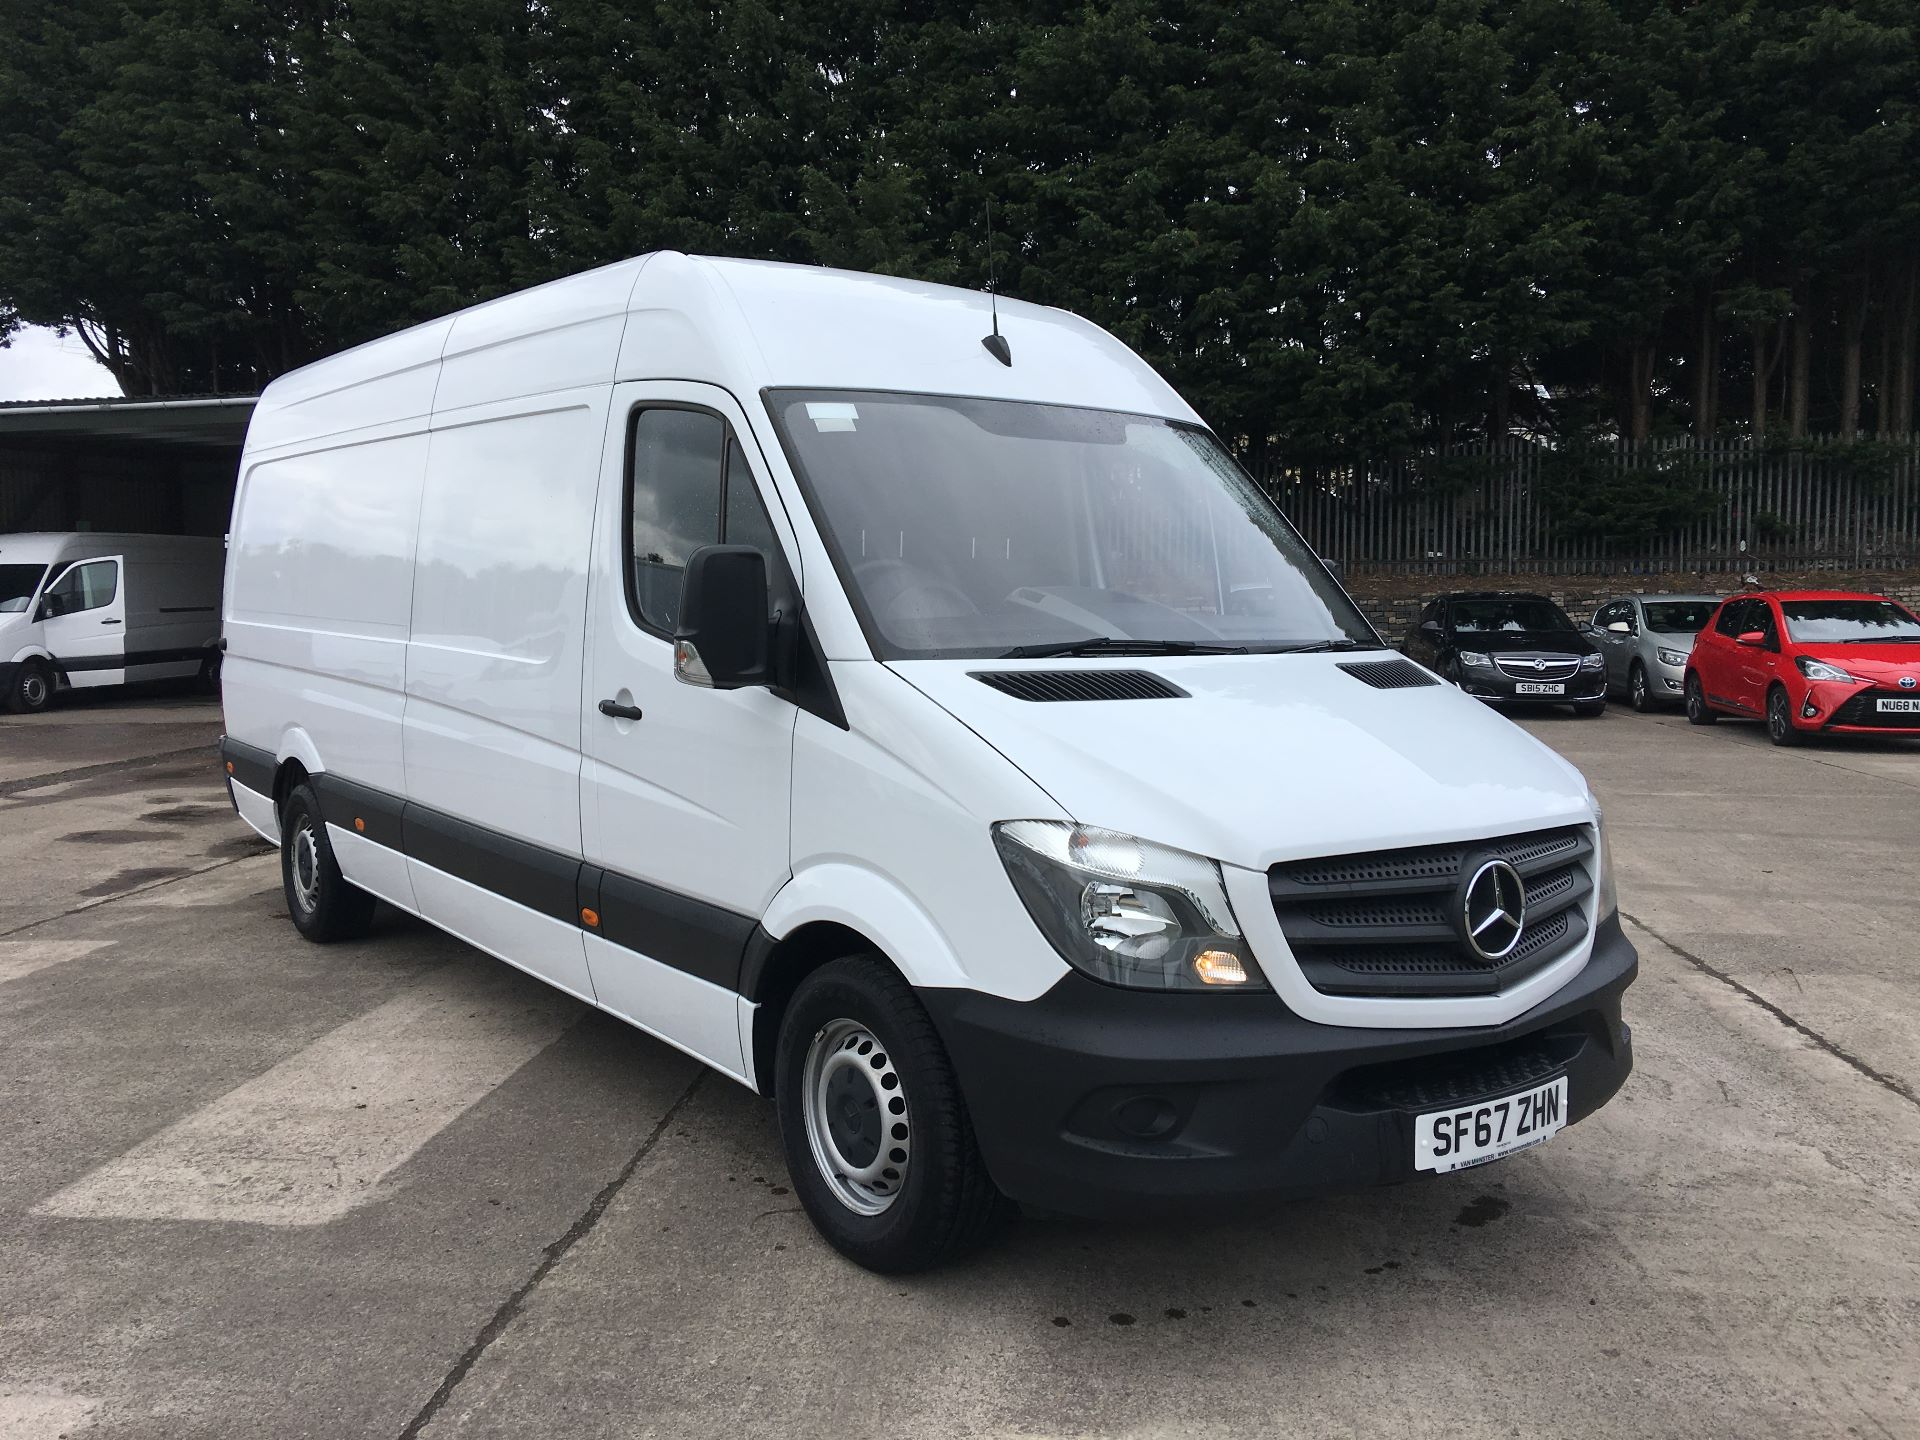 2017 Mercedes-Benz Sprinter 314 CDI LWB HIGH ROOF VAN EURO 6 (SF67ZHN)